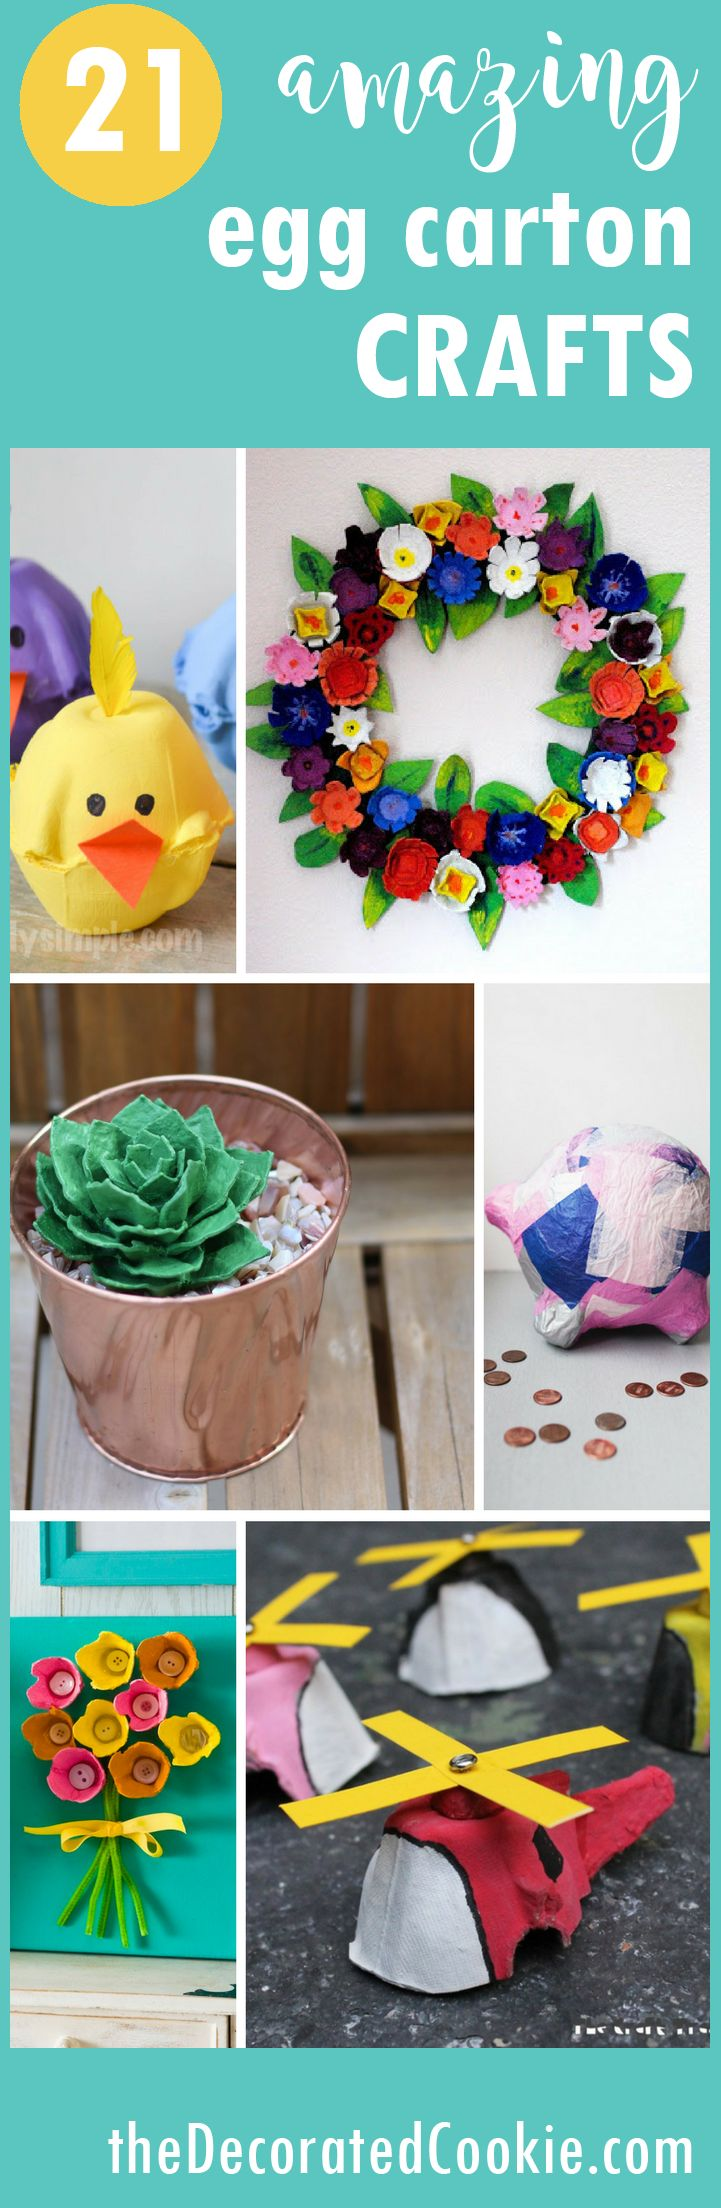 Egg carton crafts for teenagers and adults, upcycle Easter egg cartons!